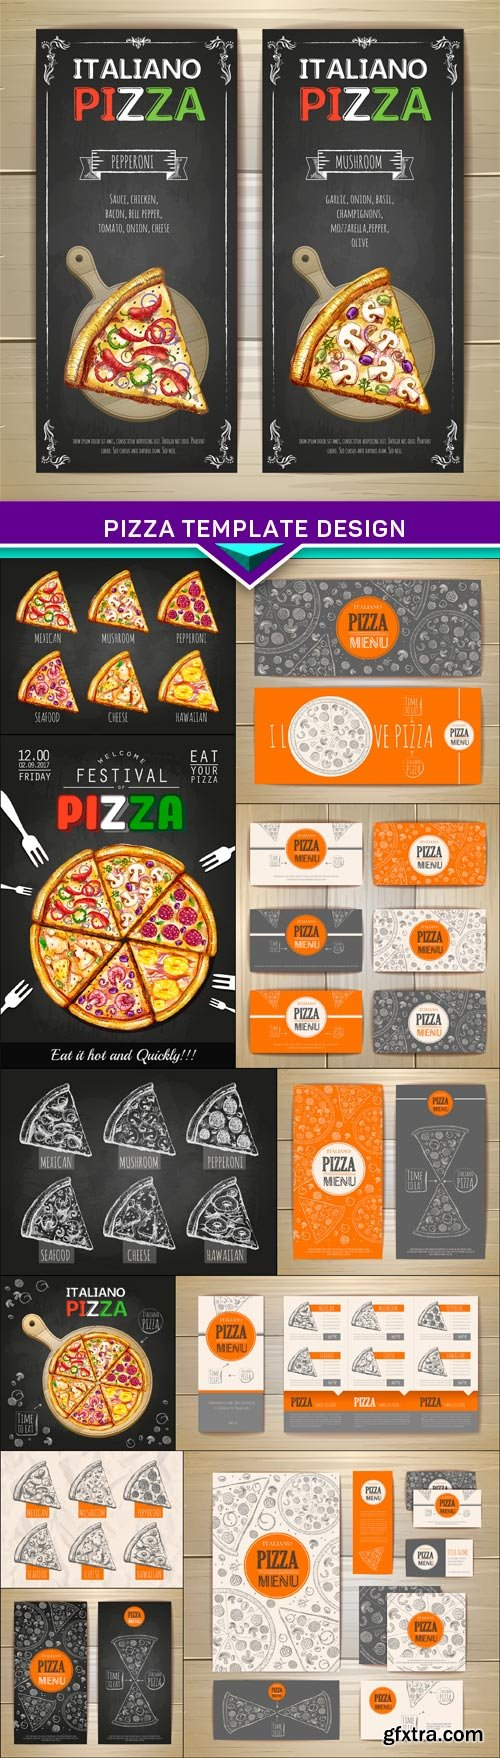 Pizza template design 12x EPS